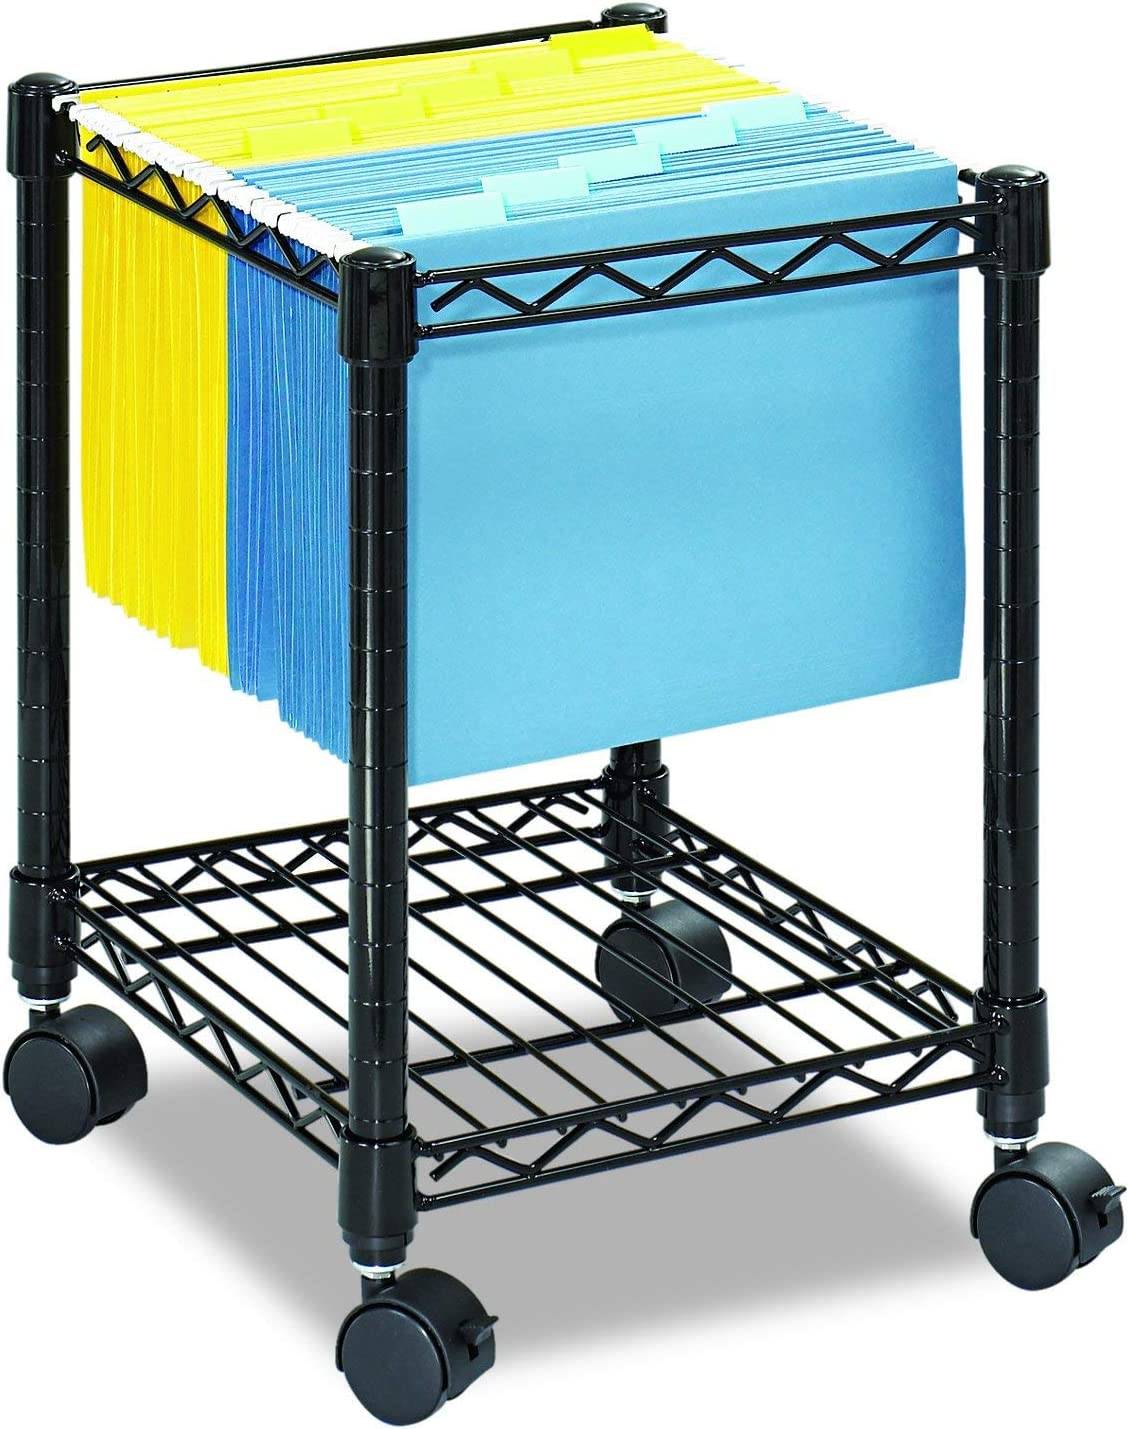 Safco Products Compact Mobile Letter Size File Cart 5277BL Black, Black Powder Coat Finish, Swivel Wheels for Mobility: Office Products